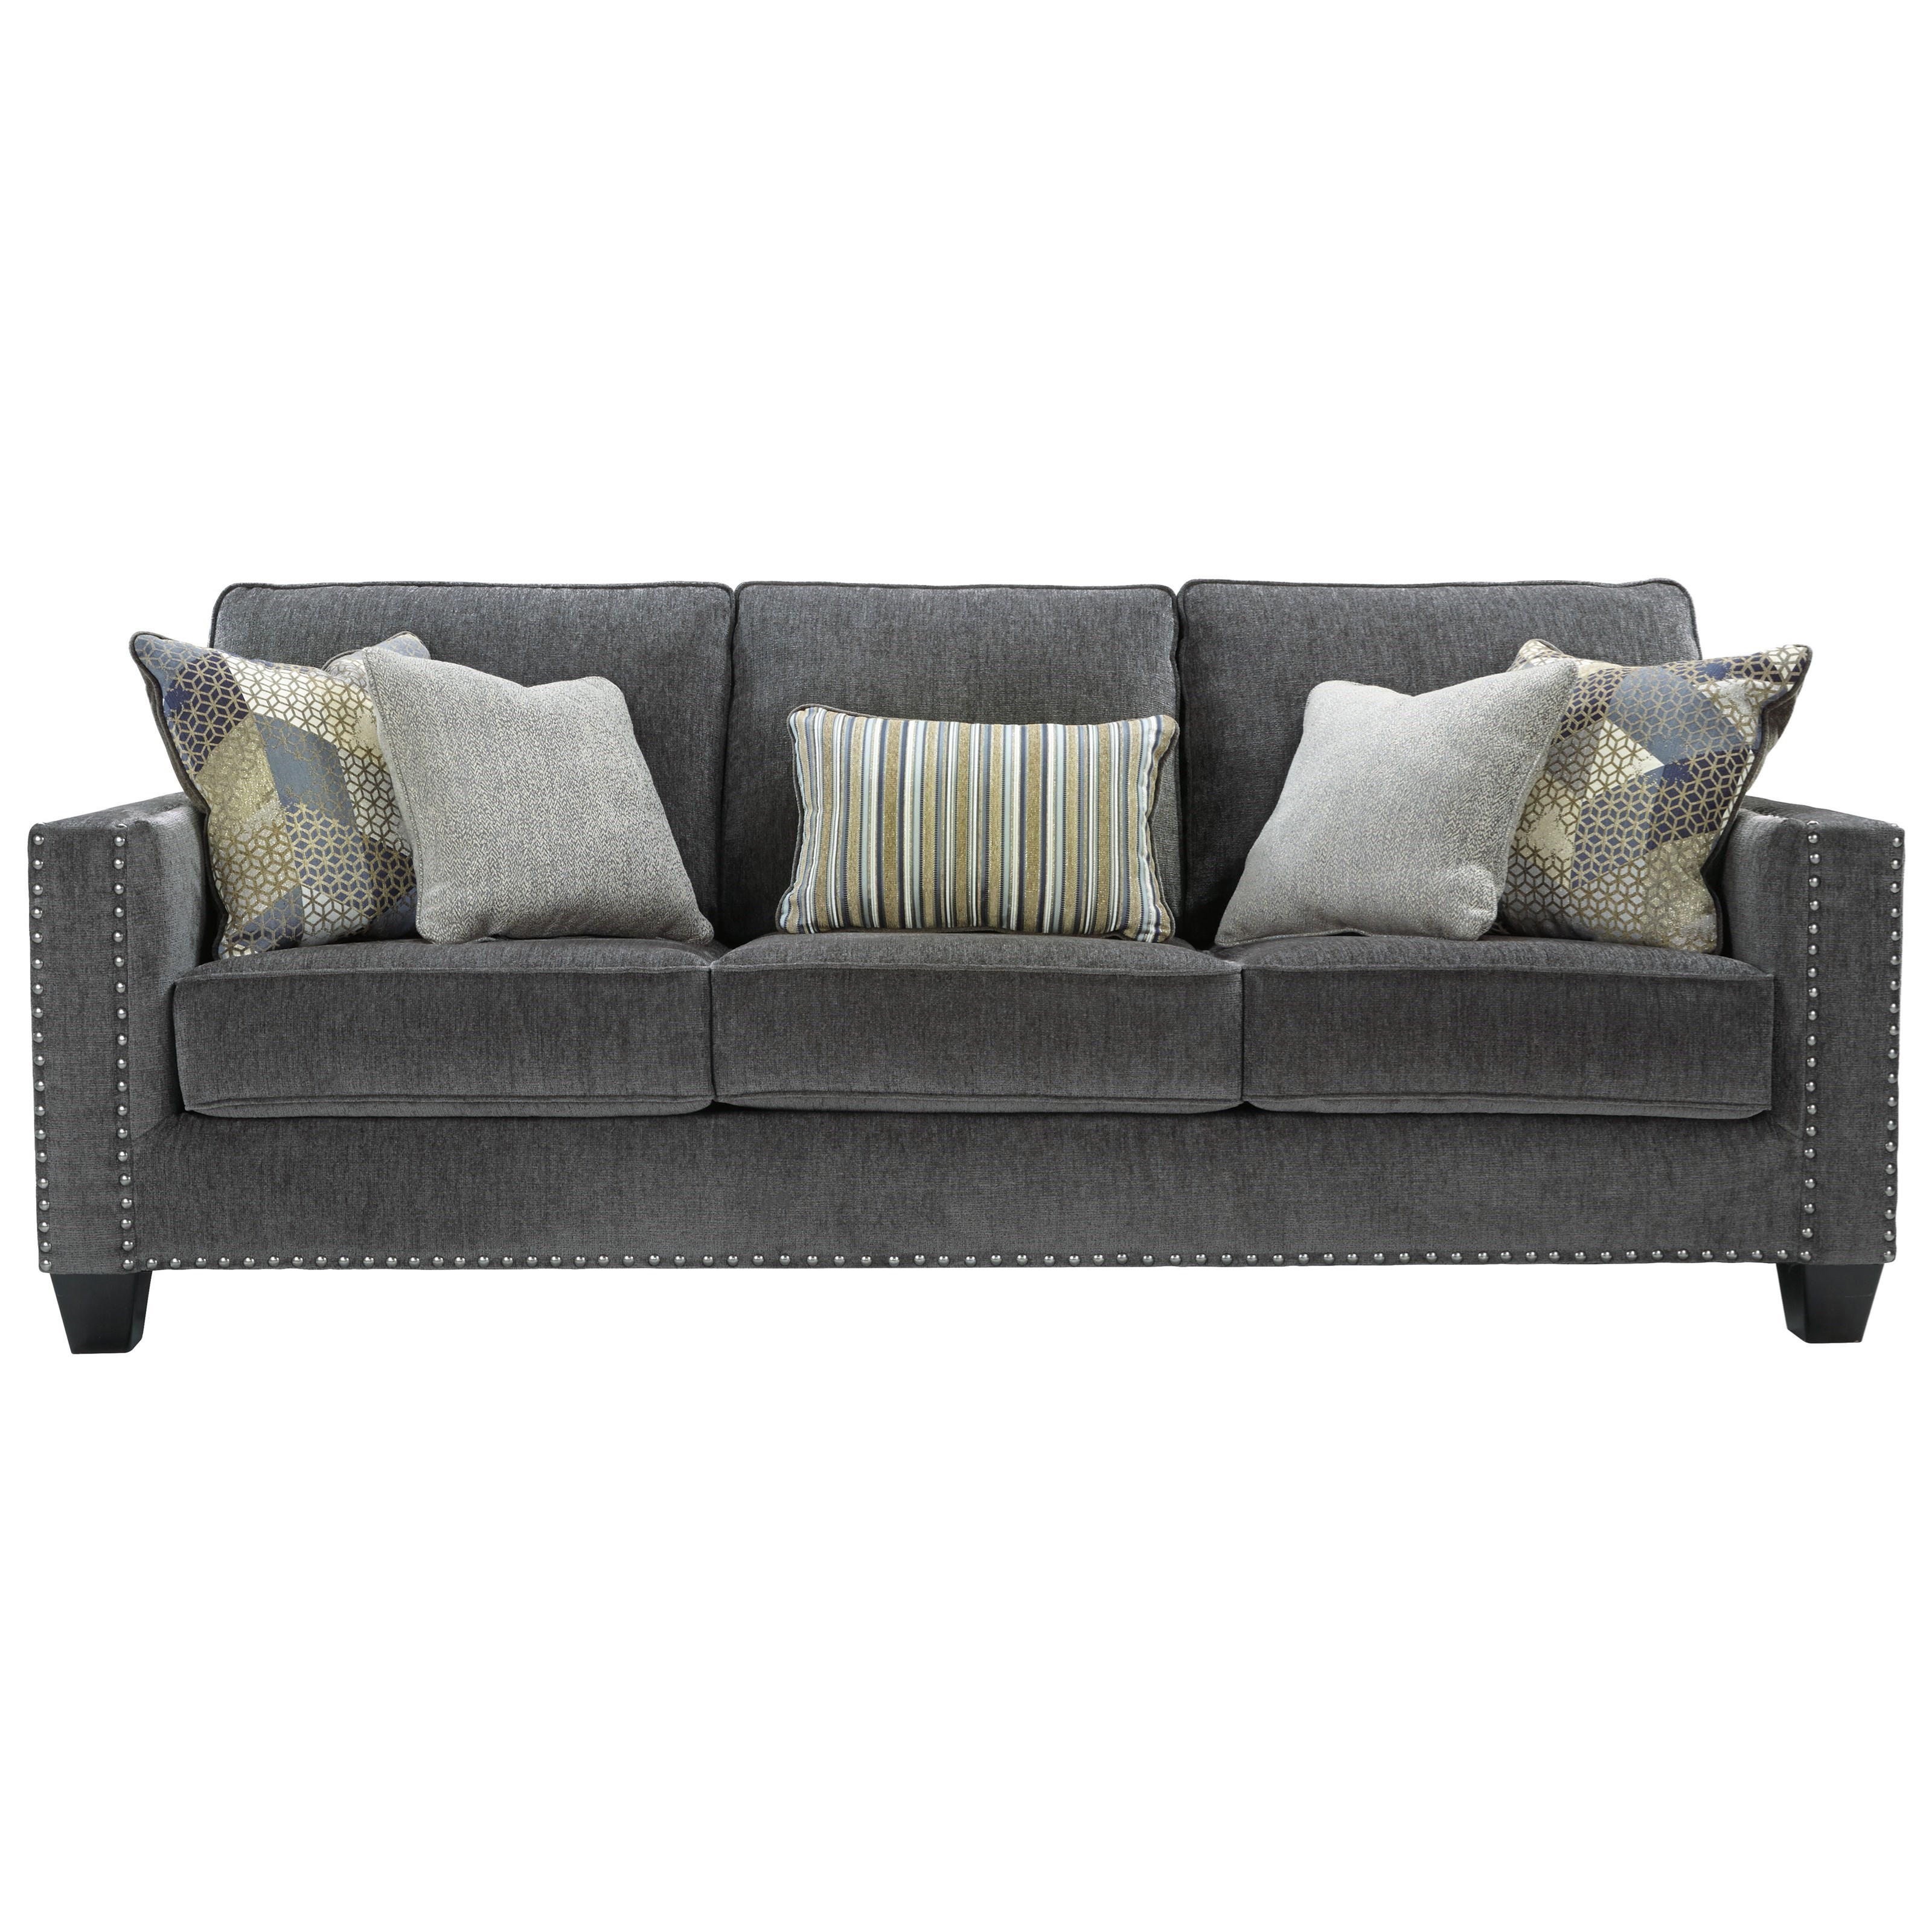 Gavril Sofa by Benchcraft at Suburban Furniture